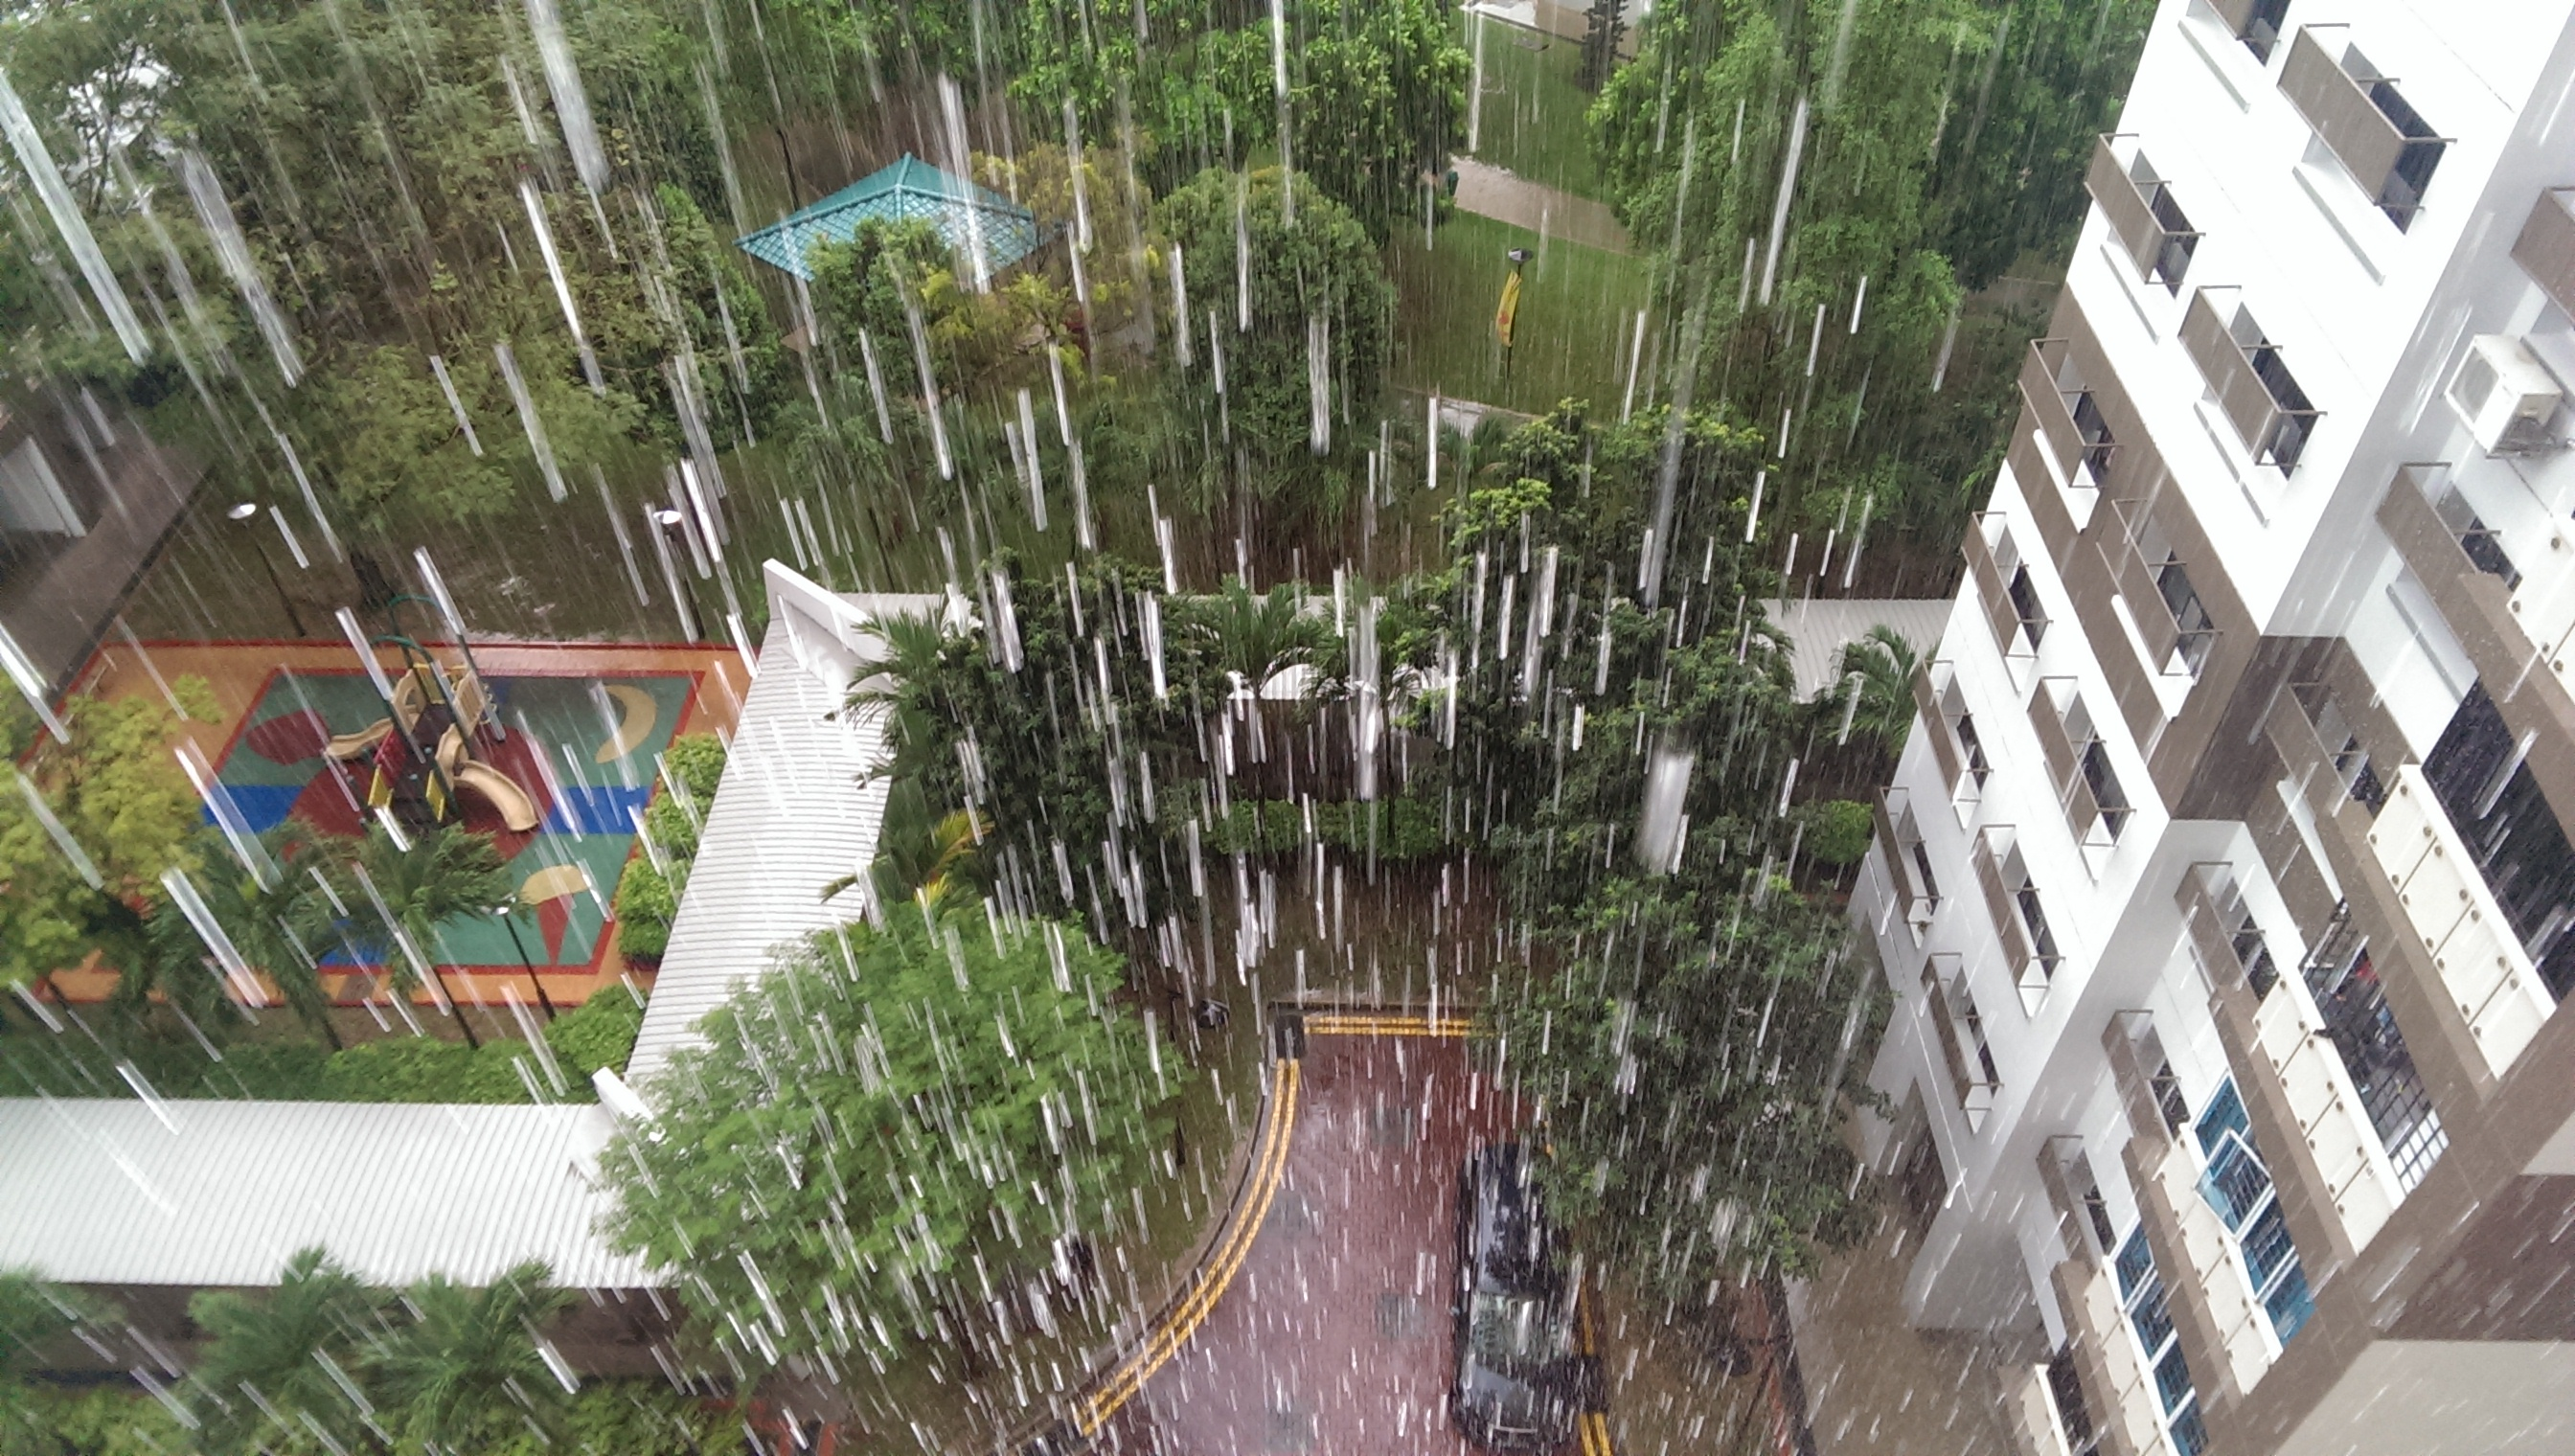 Description: Rainin on my Birthday, by Bryan Lee Jie Long